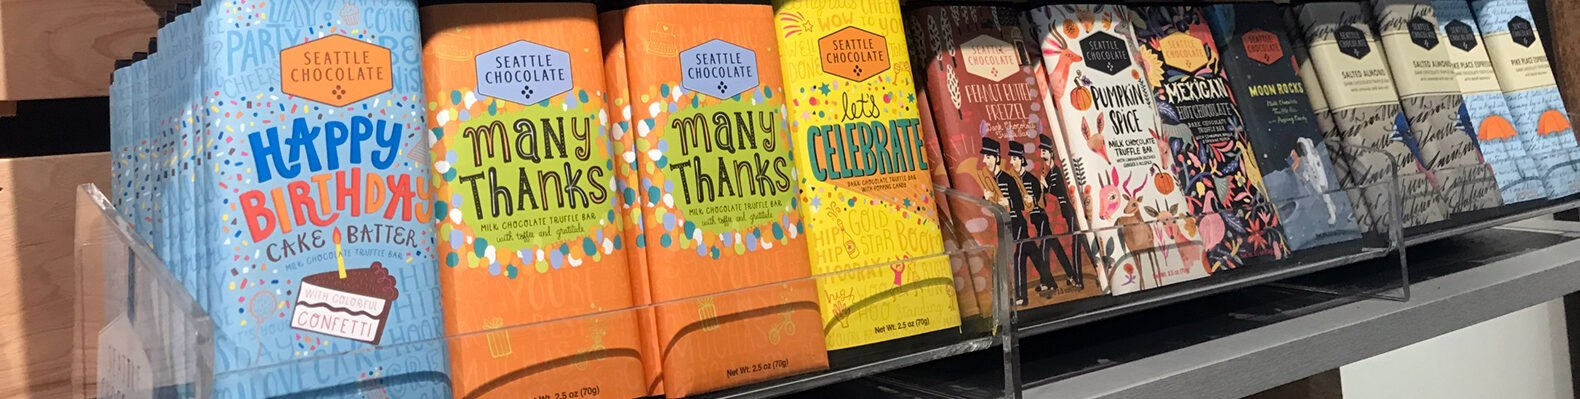 Seattle Chocolate candy bars on shelves